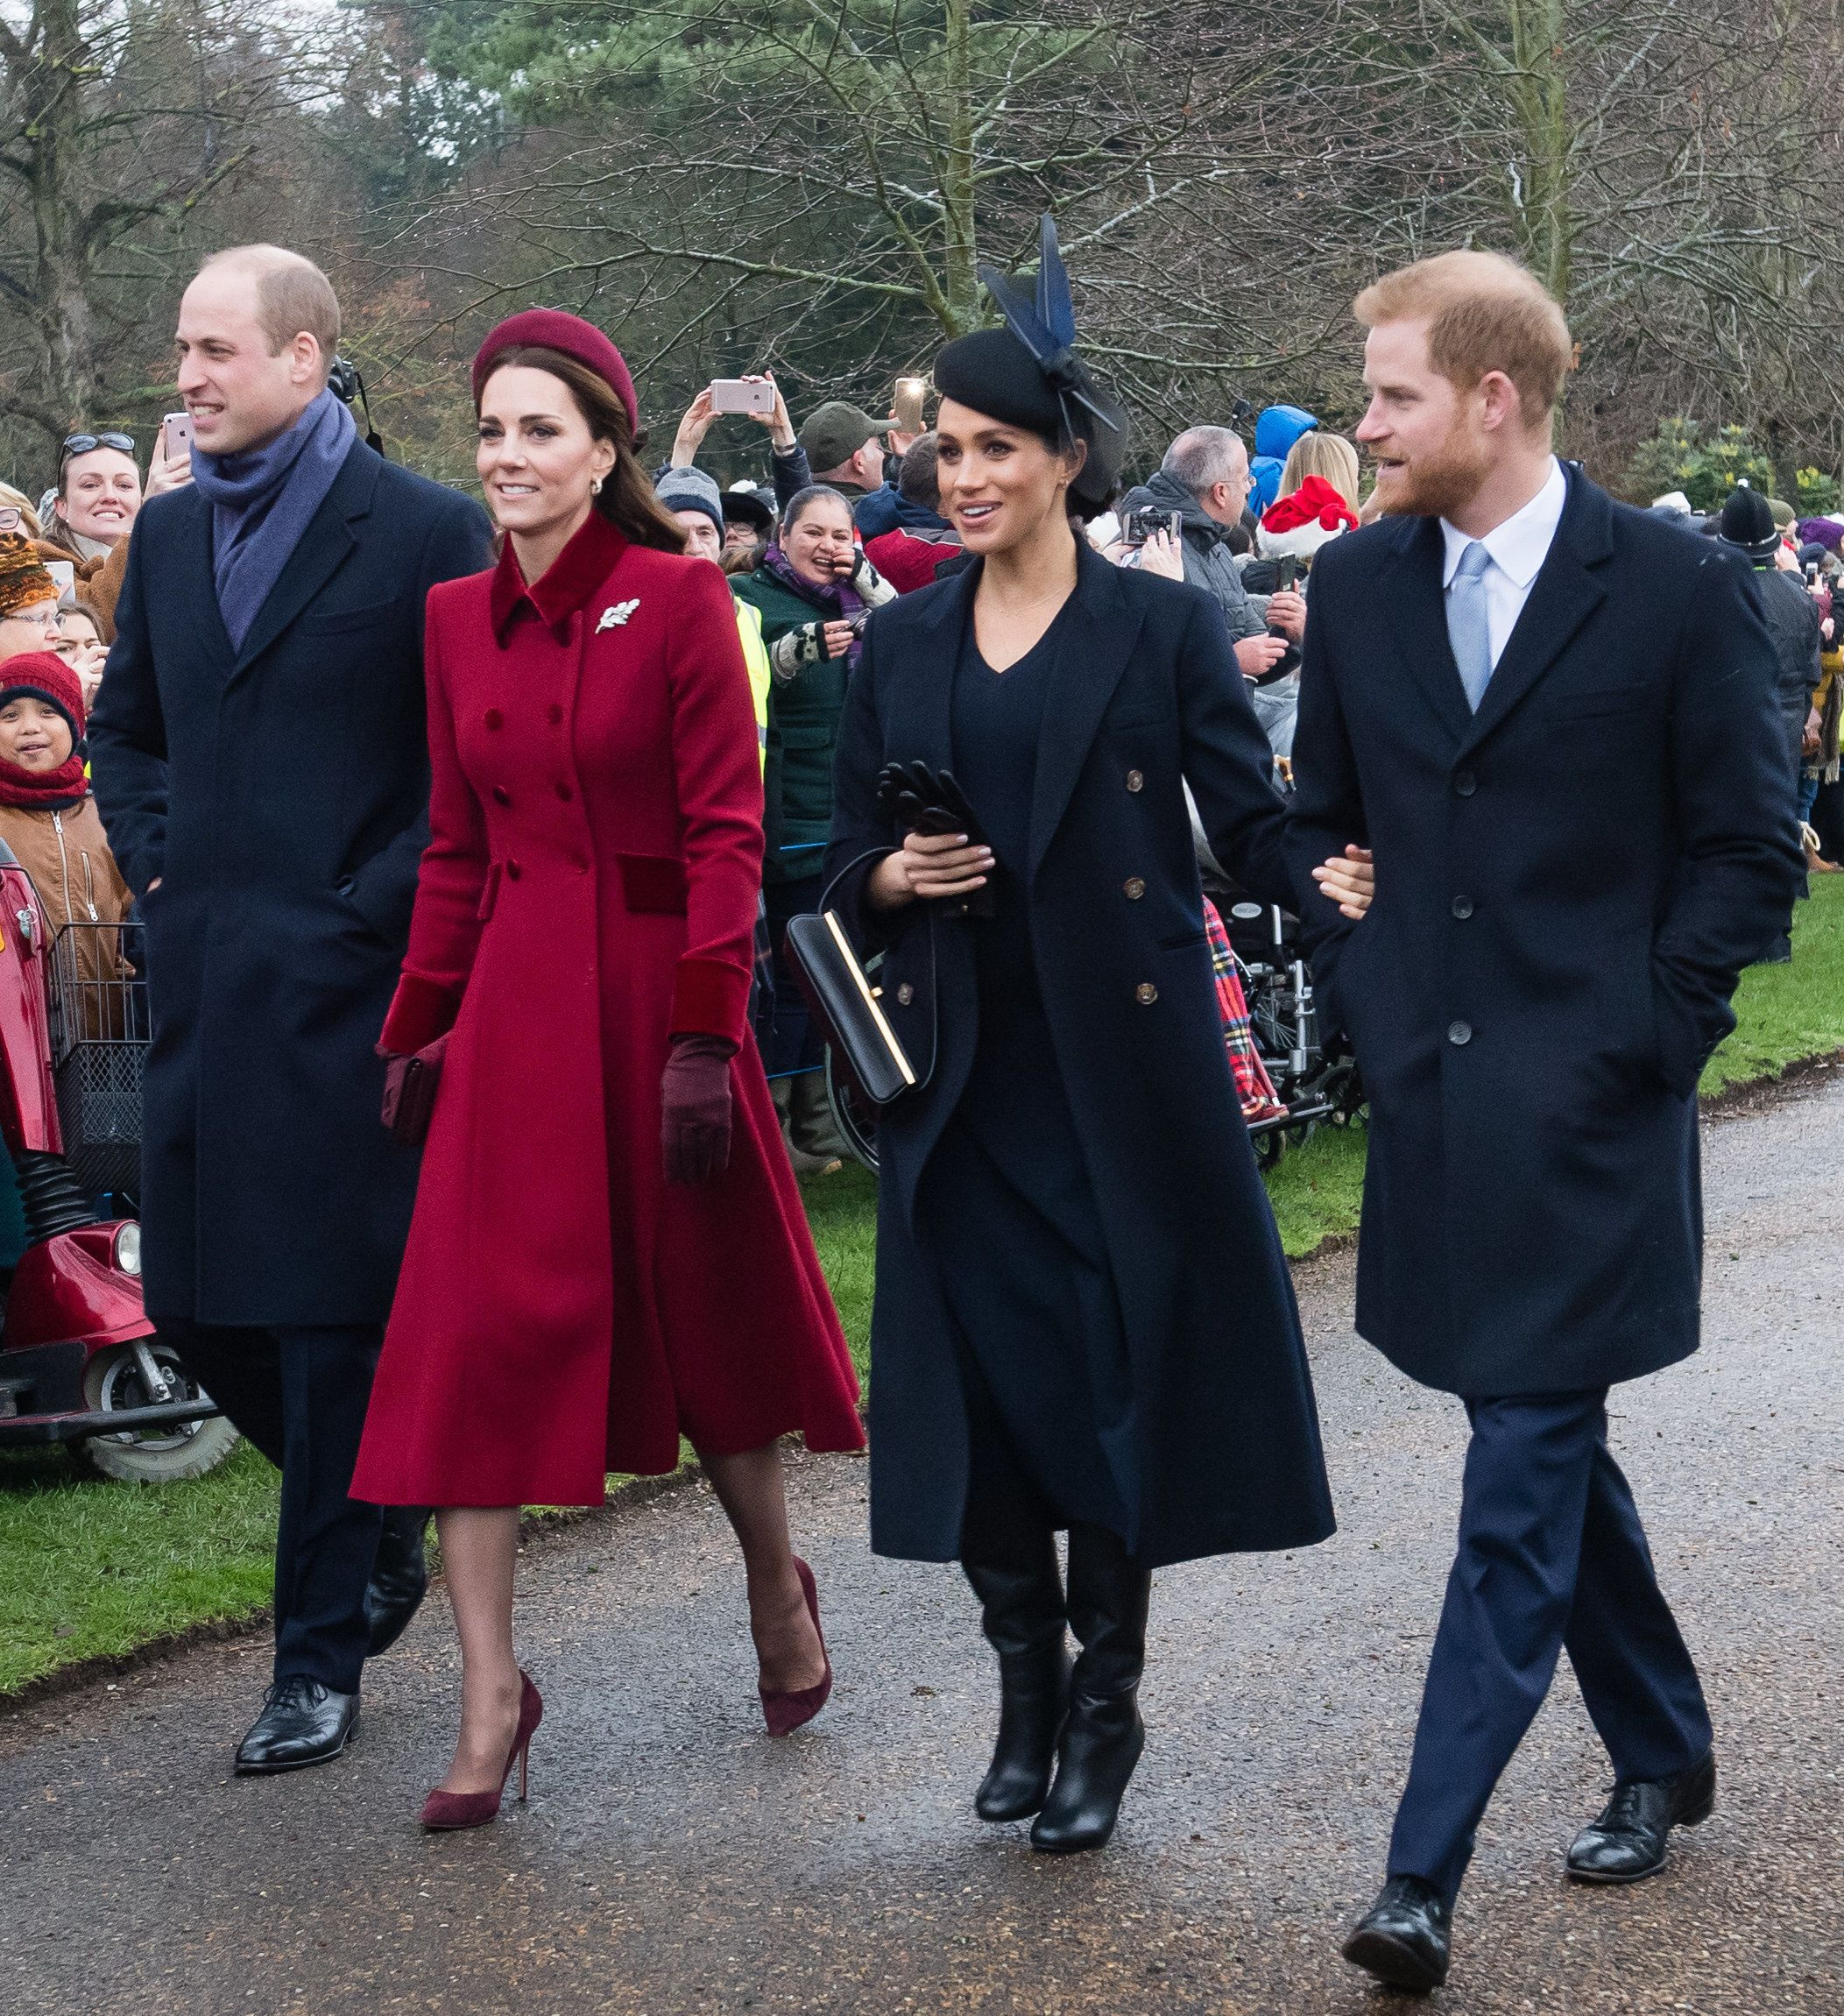 Meghan Markle's Christmas Day look was all from Victoria Beckham's line